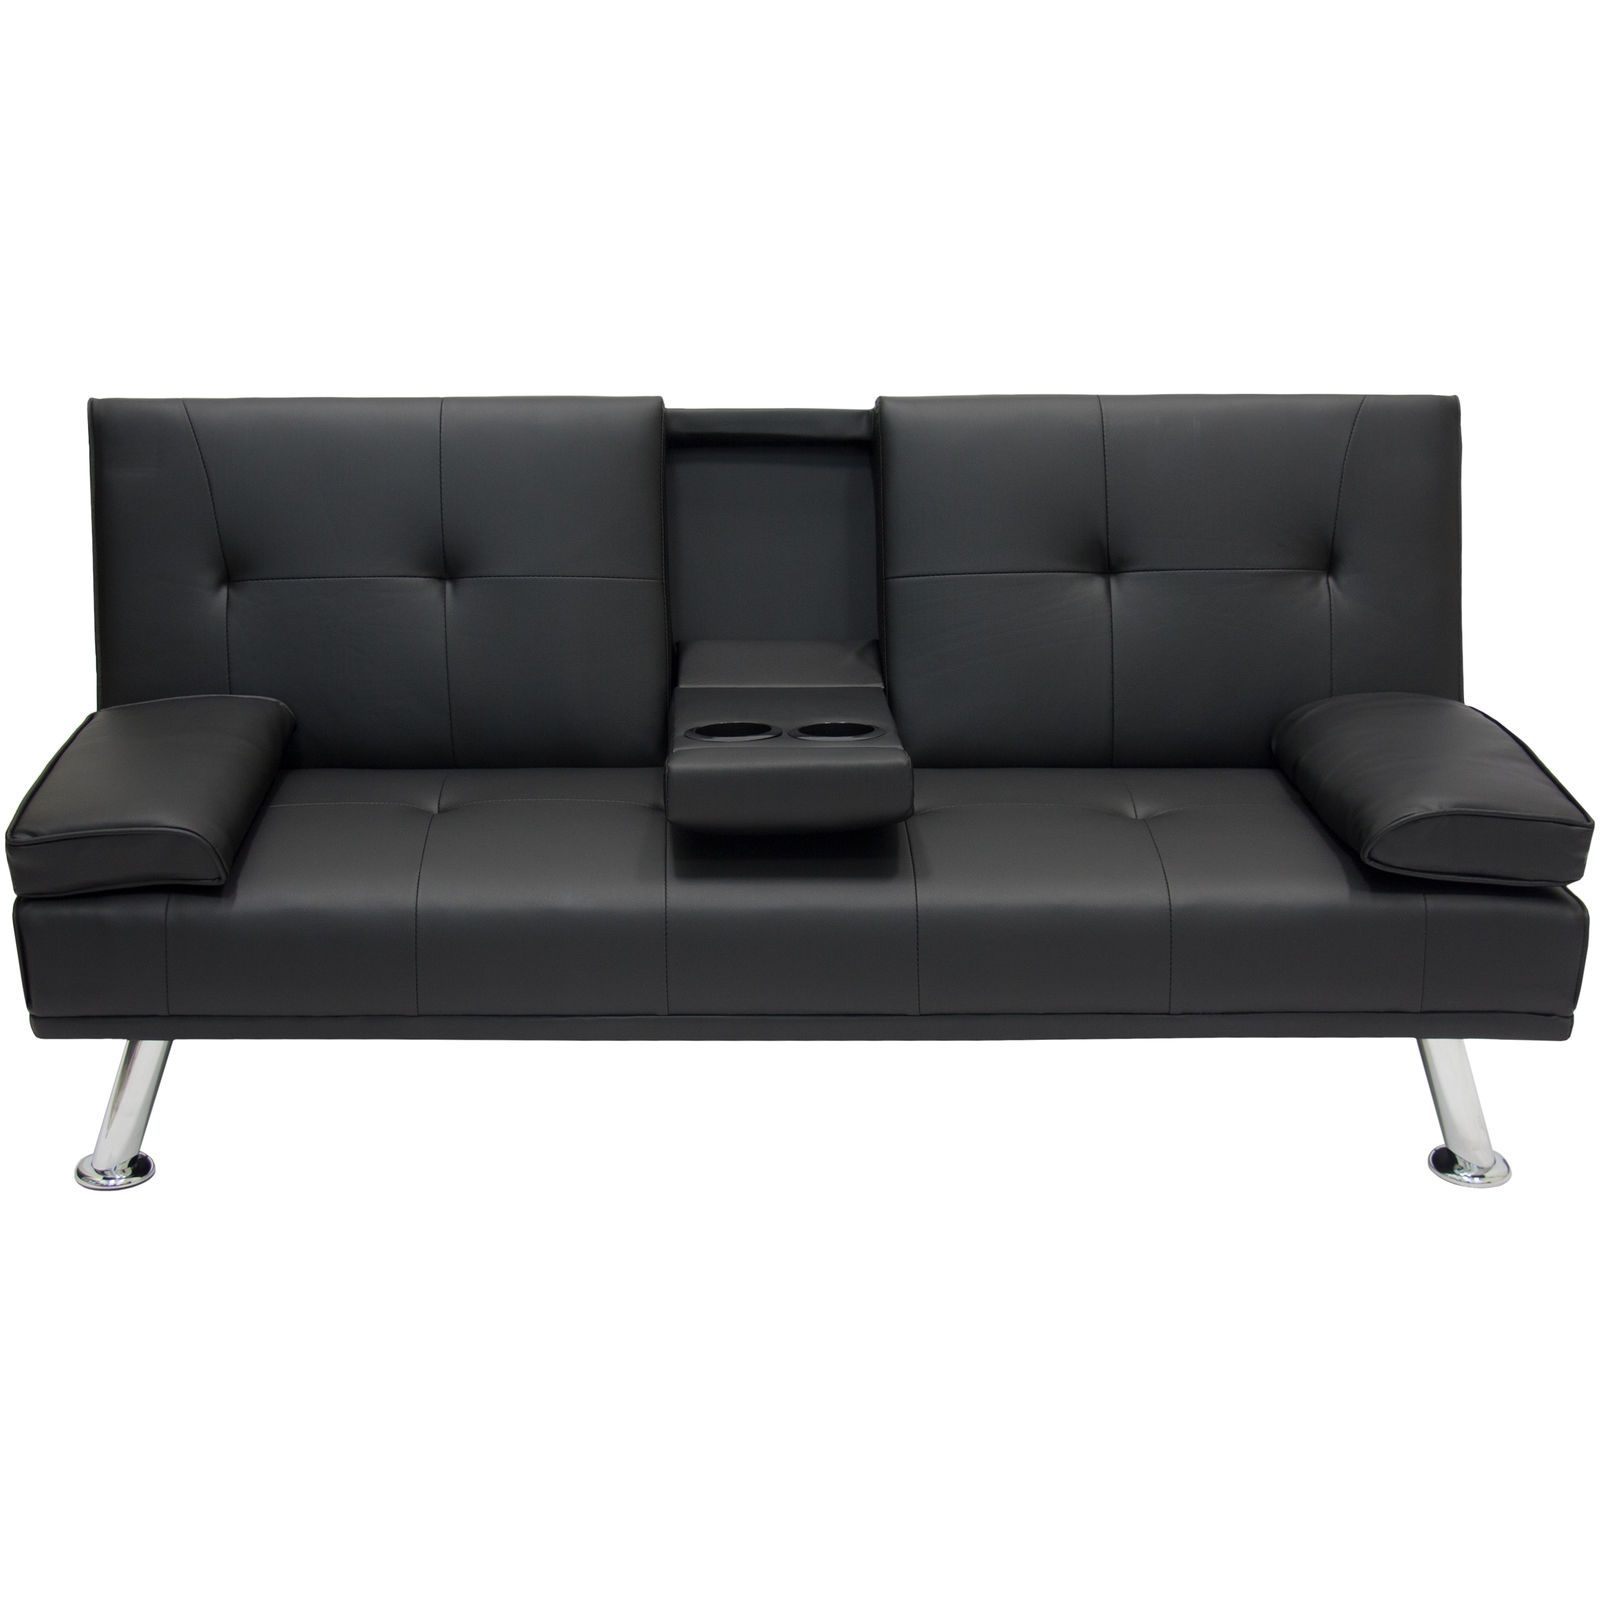 Entertainment Furniture Futon Sofa Bed Fold Up Down Recliner Couch